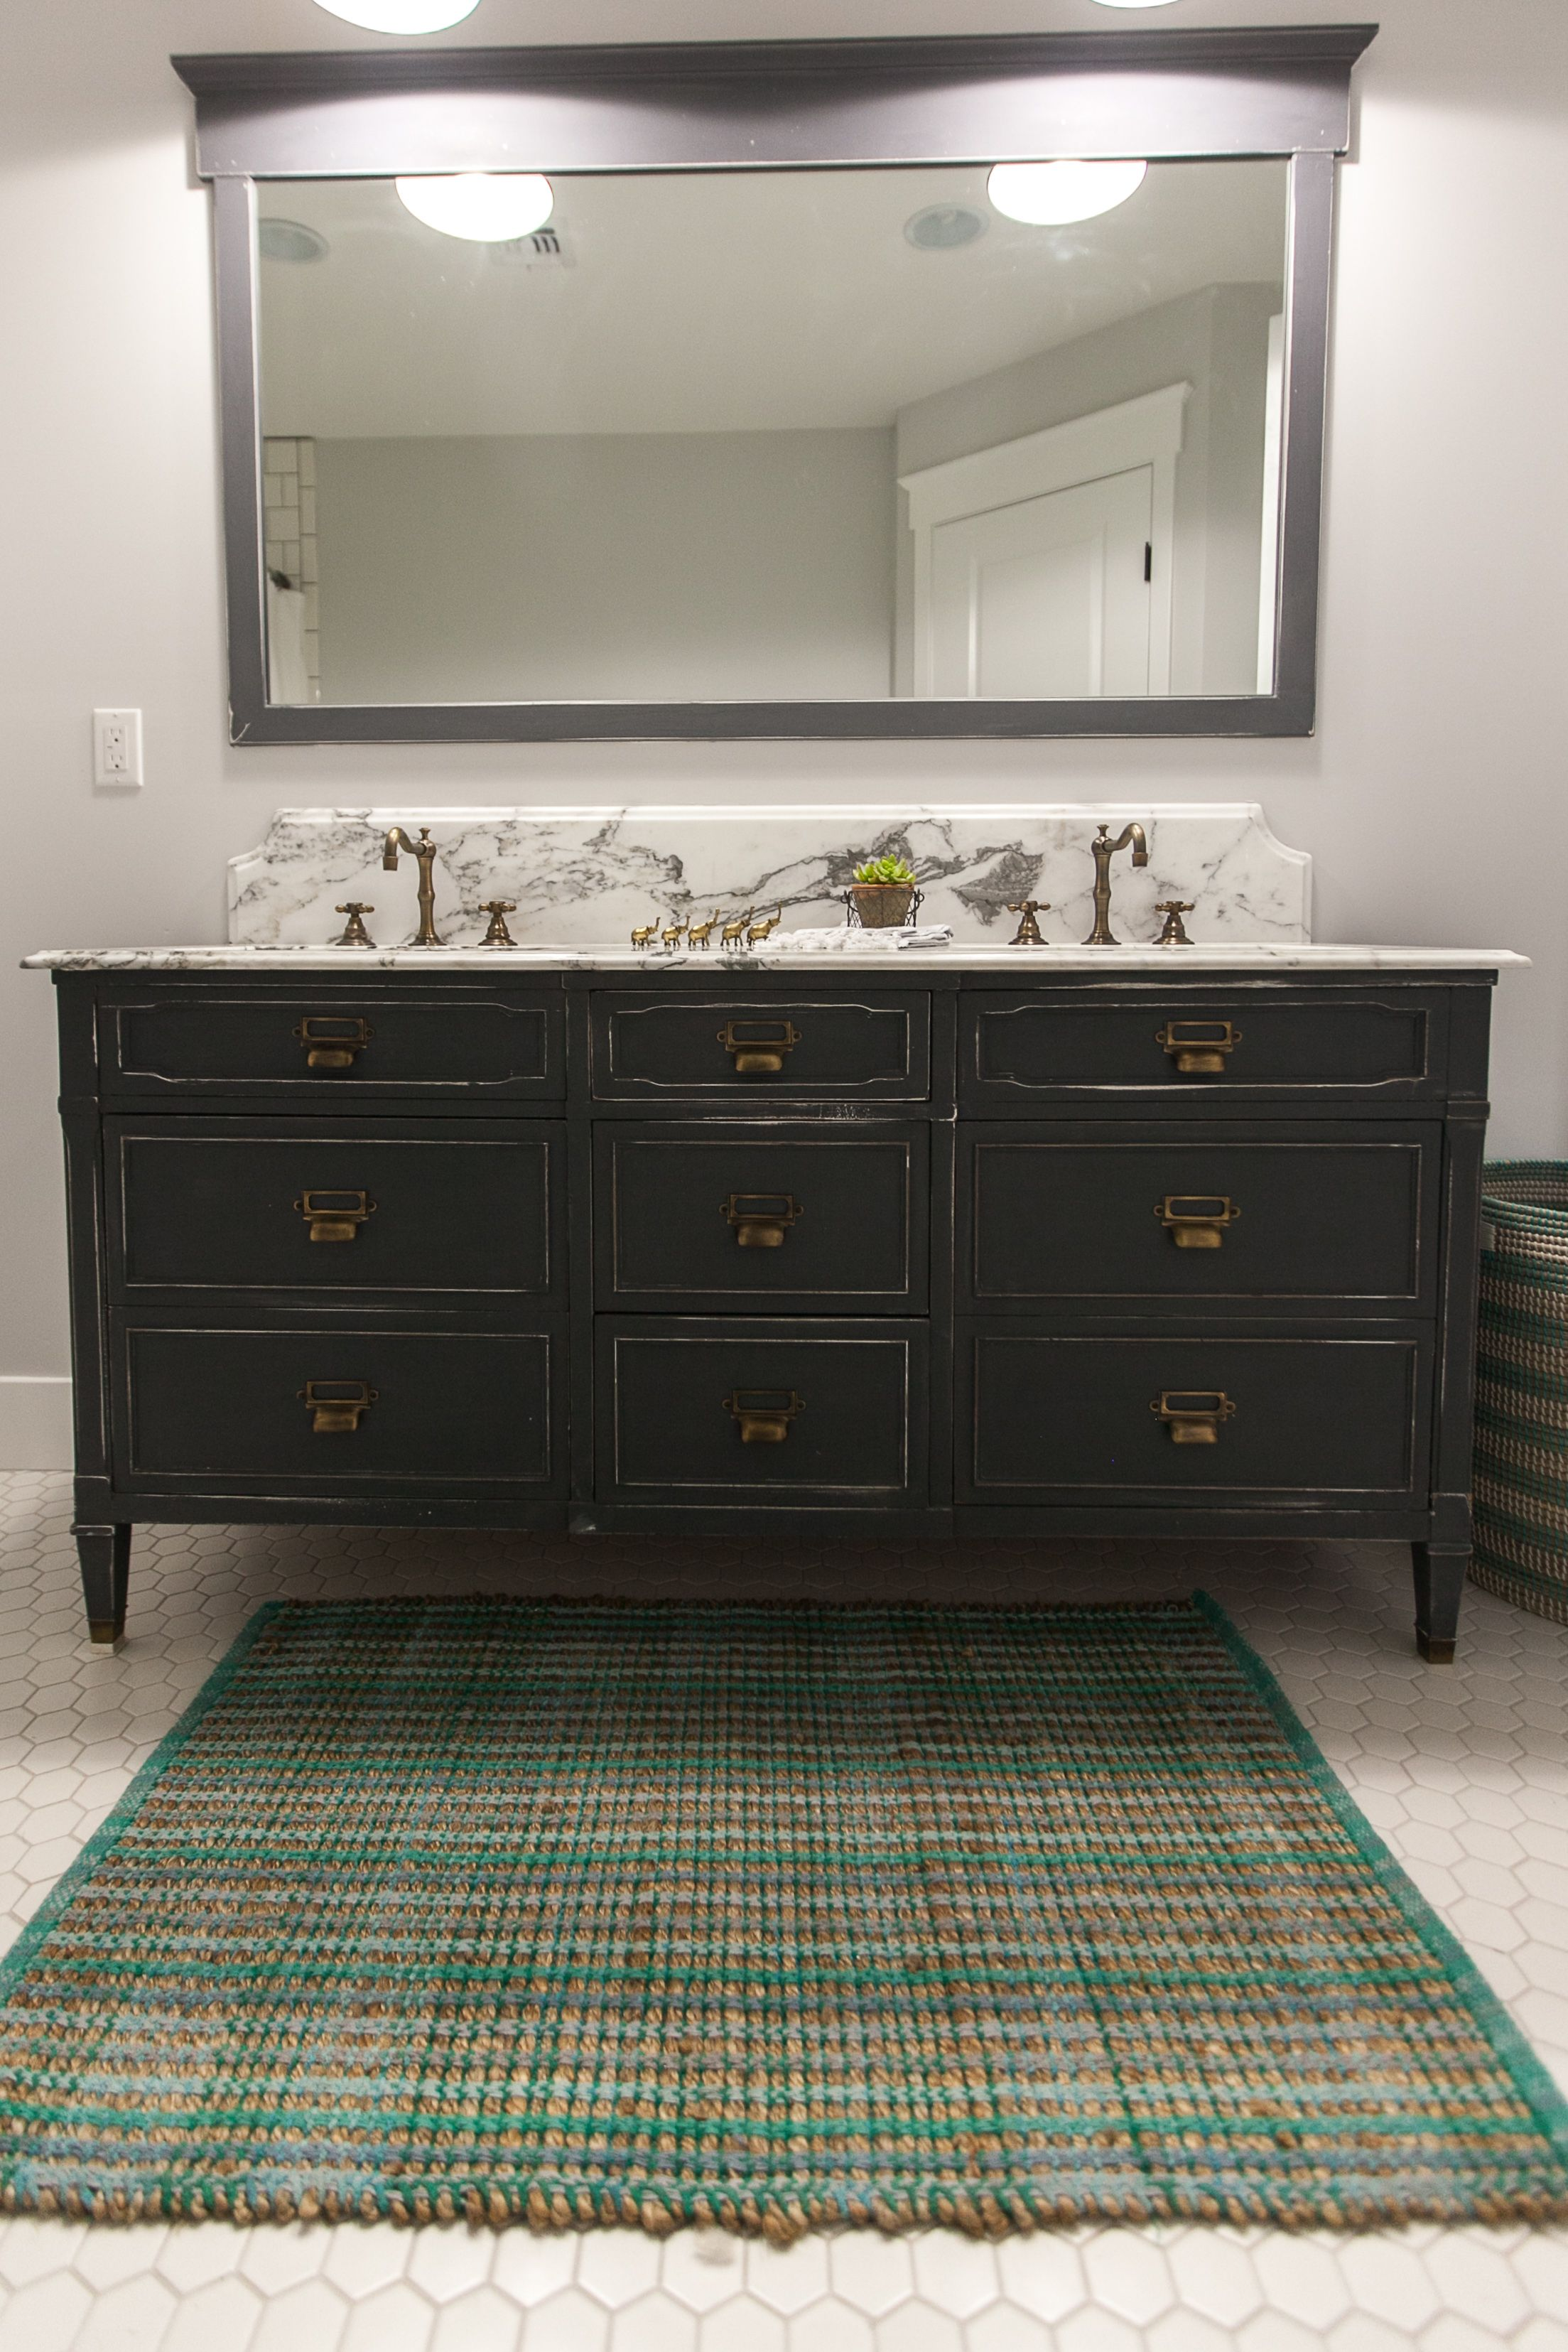 Admirable Dresser Repurposed As Bath Vanity Hardware By House Of Home Interior And Landscaping Analalmasignezvosmurscom